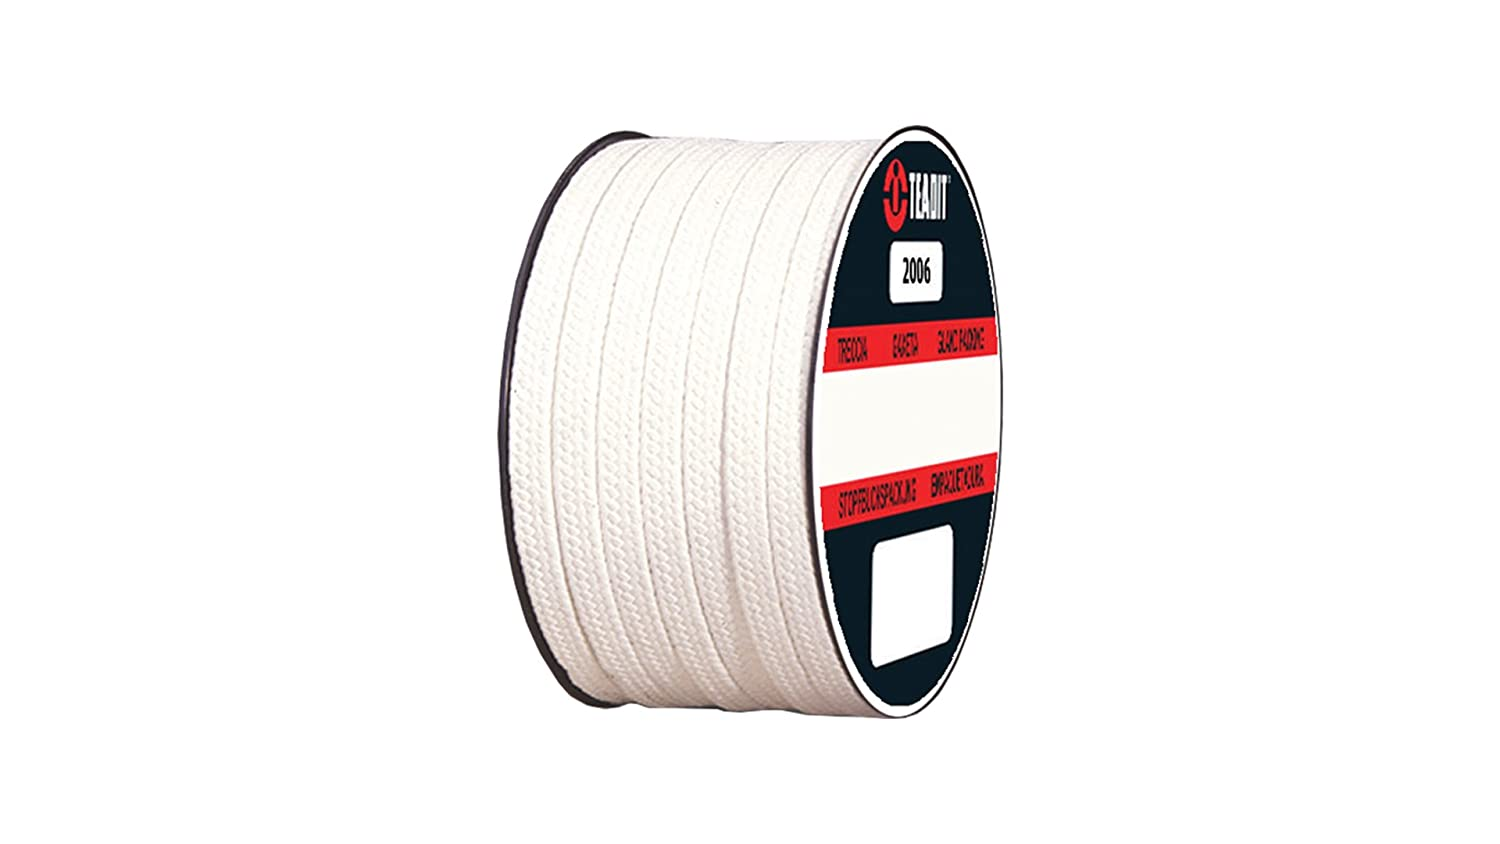 STCC Pure PTFE Yarn 2006.312x10 2006 Teadit Style Braided Packing FDA Approved Spool 5//16 CS x 10 lb Spool 5//16 CS x 10 lb Sterling Seal and Supply